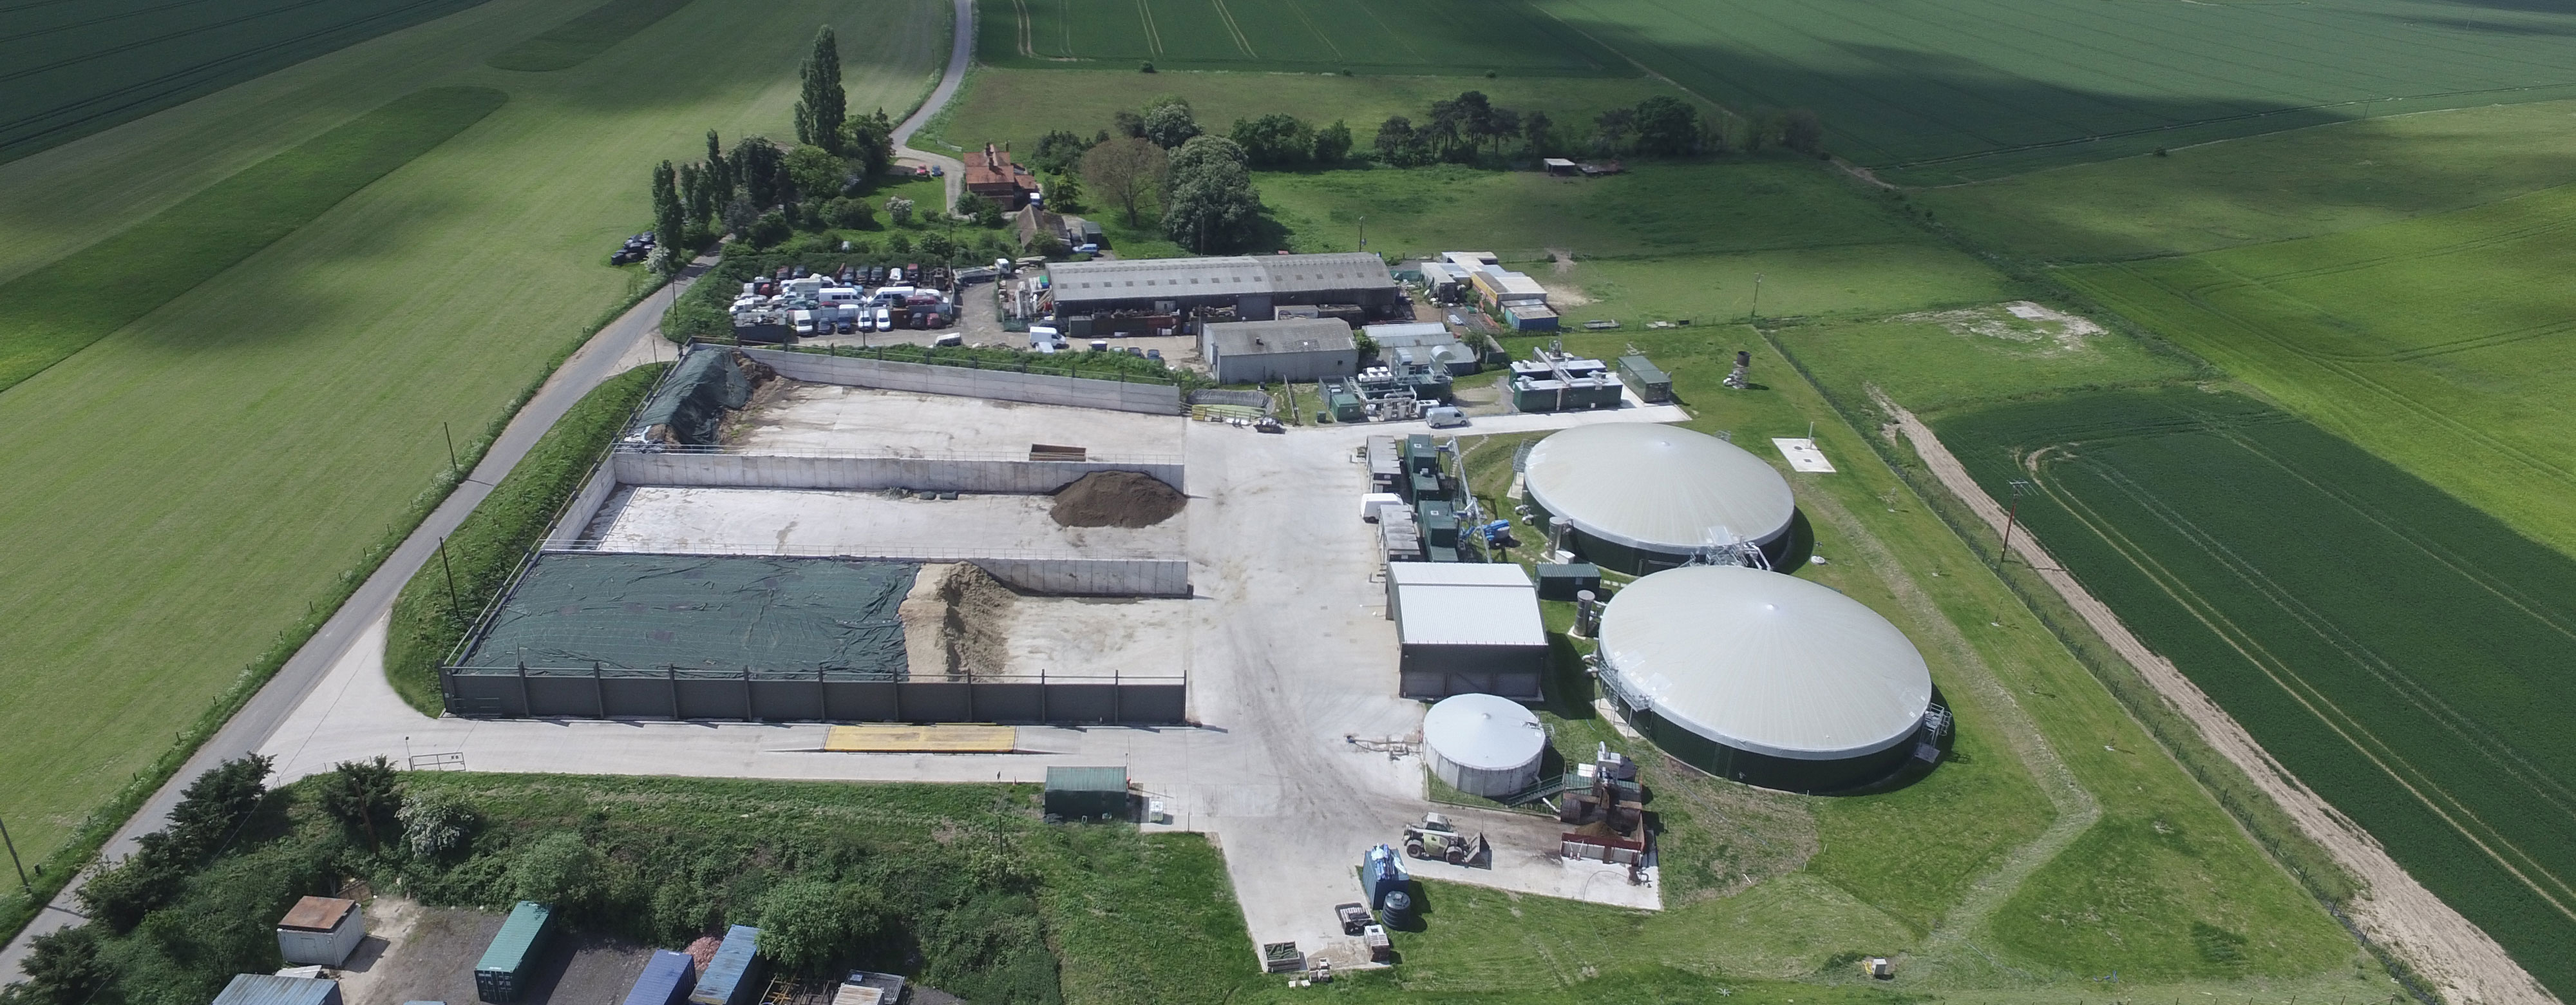 Biogas digesters at Icknield Farm, South Oxfordshire